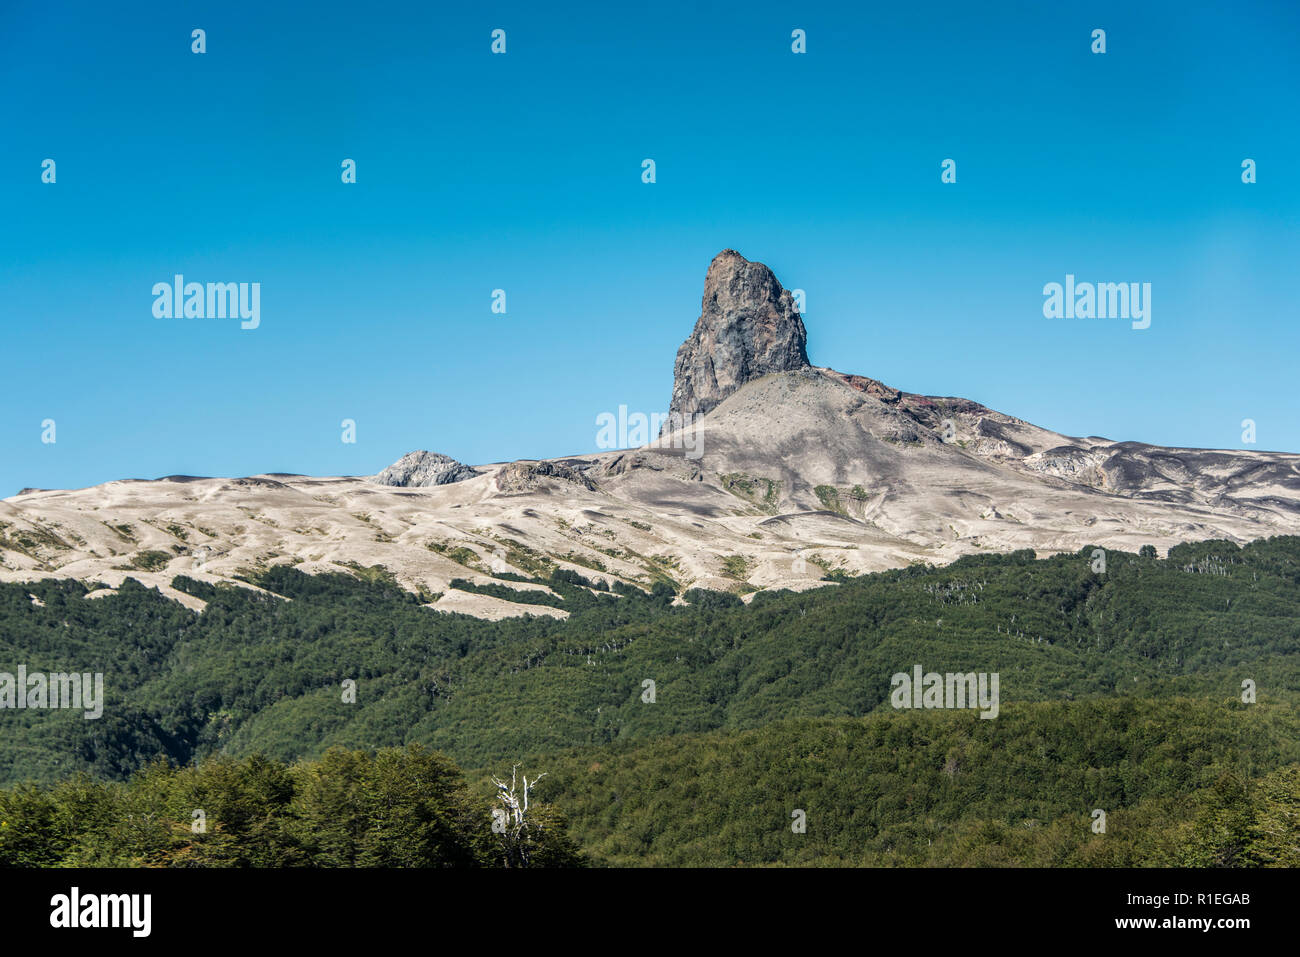 The rock in the Nahuel Huapi National Park at the Chile-Argentina border - Stock Image